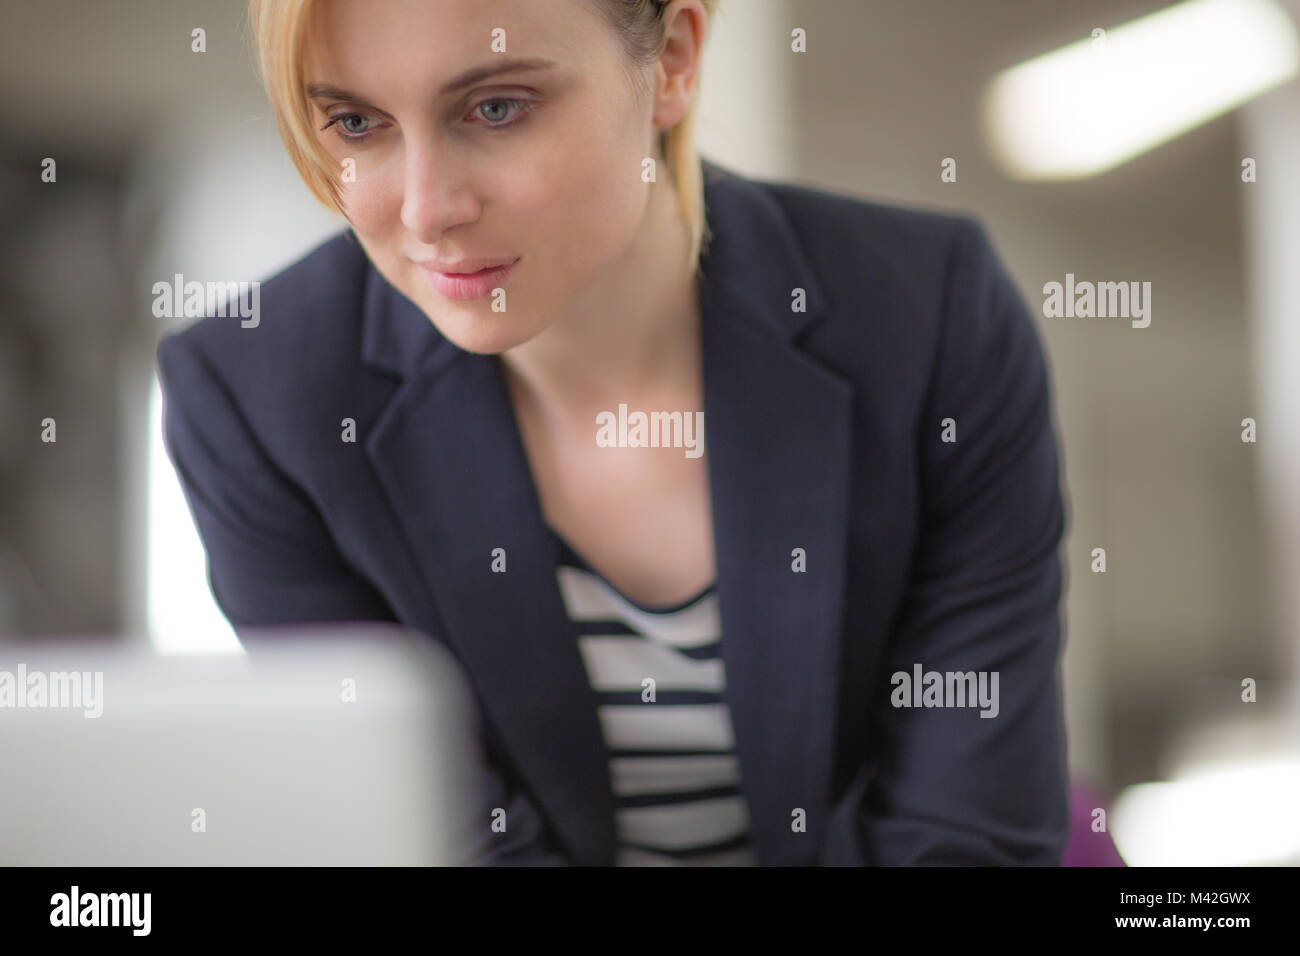 Young adult female looking at a laptop - Stock Image